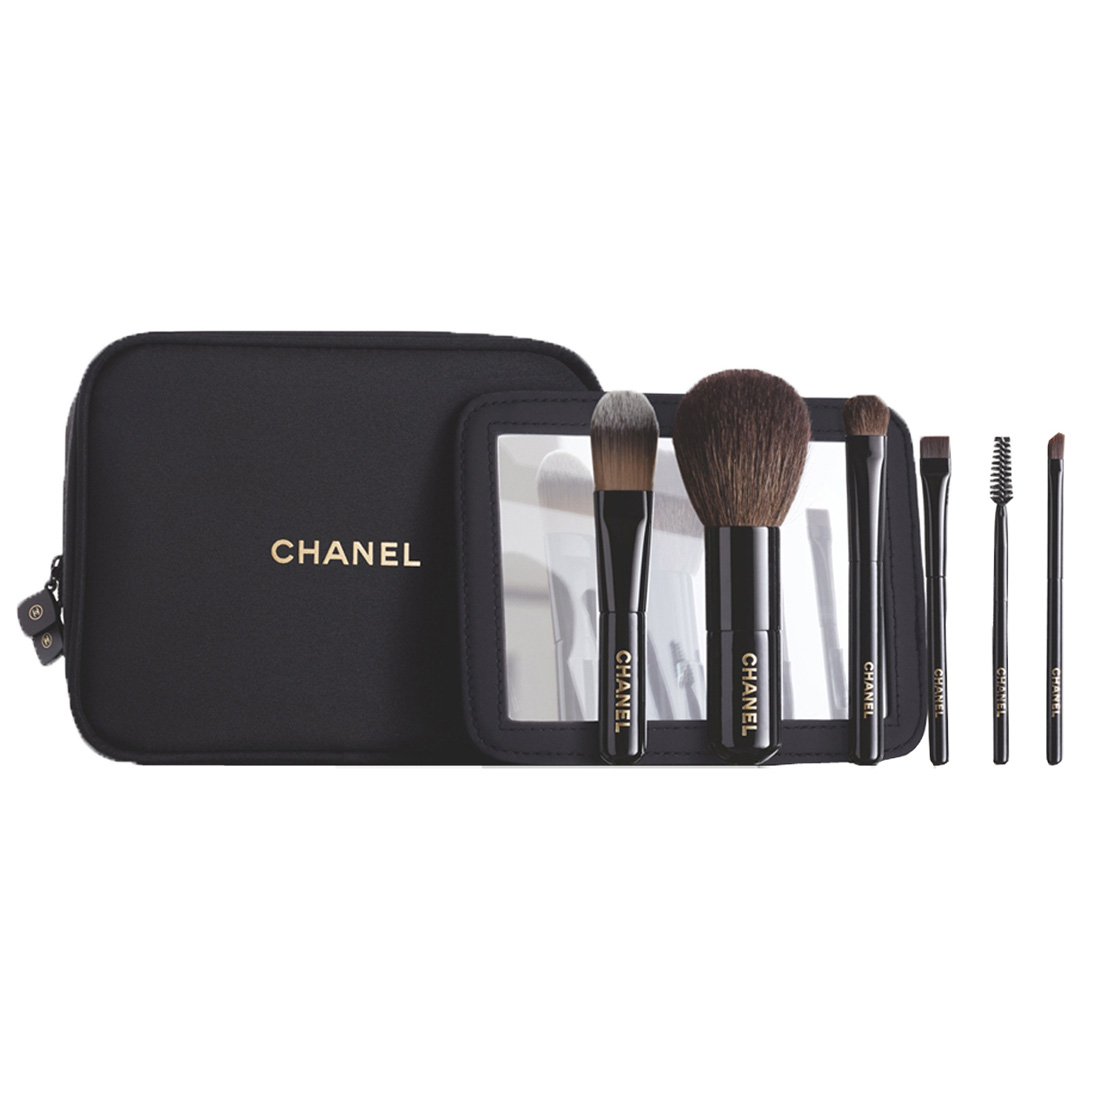 Chanel Brush Set, $125